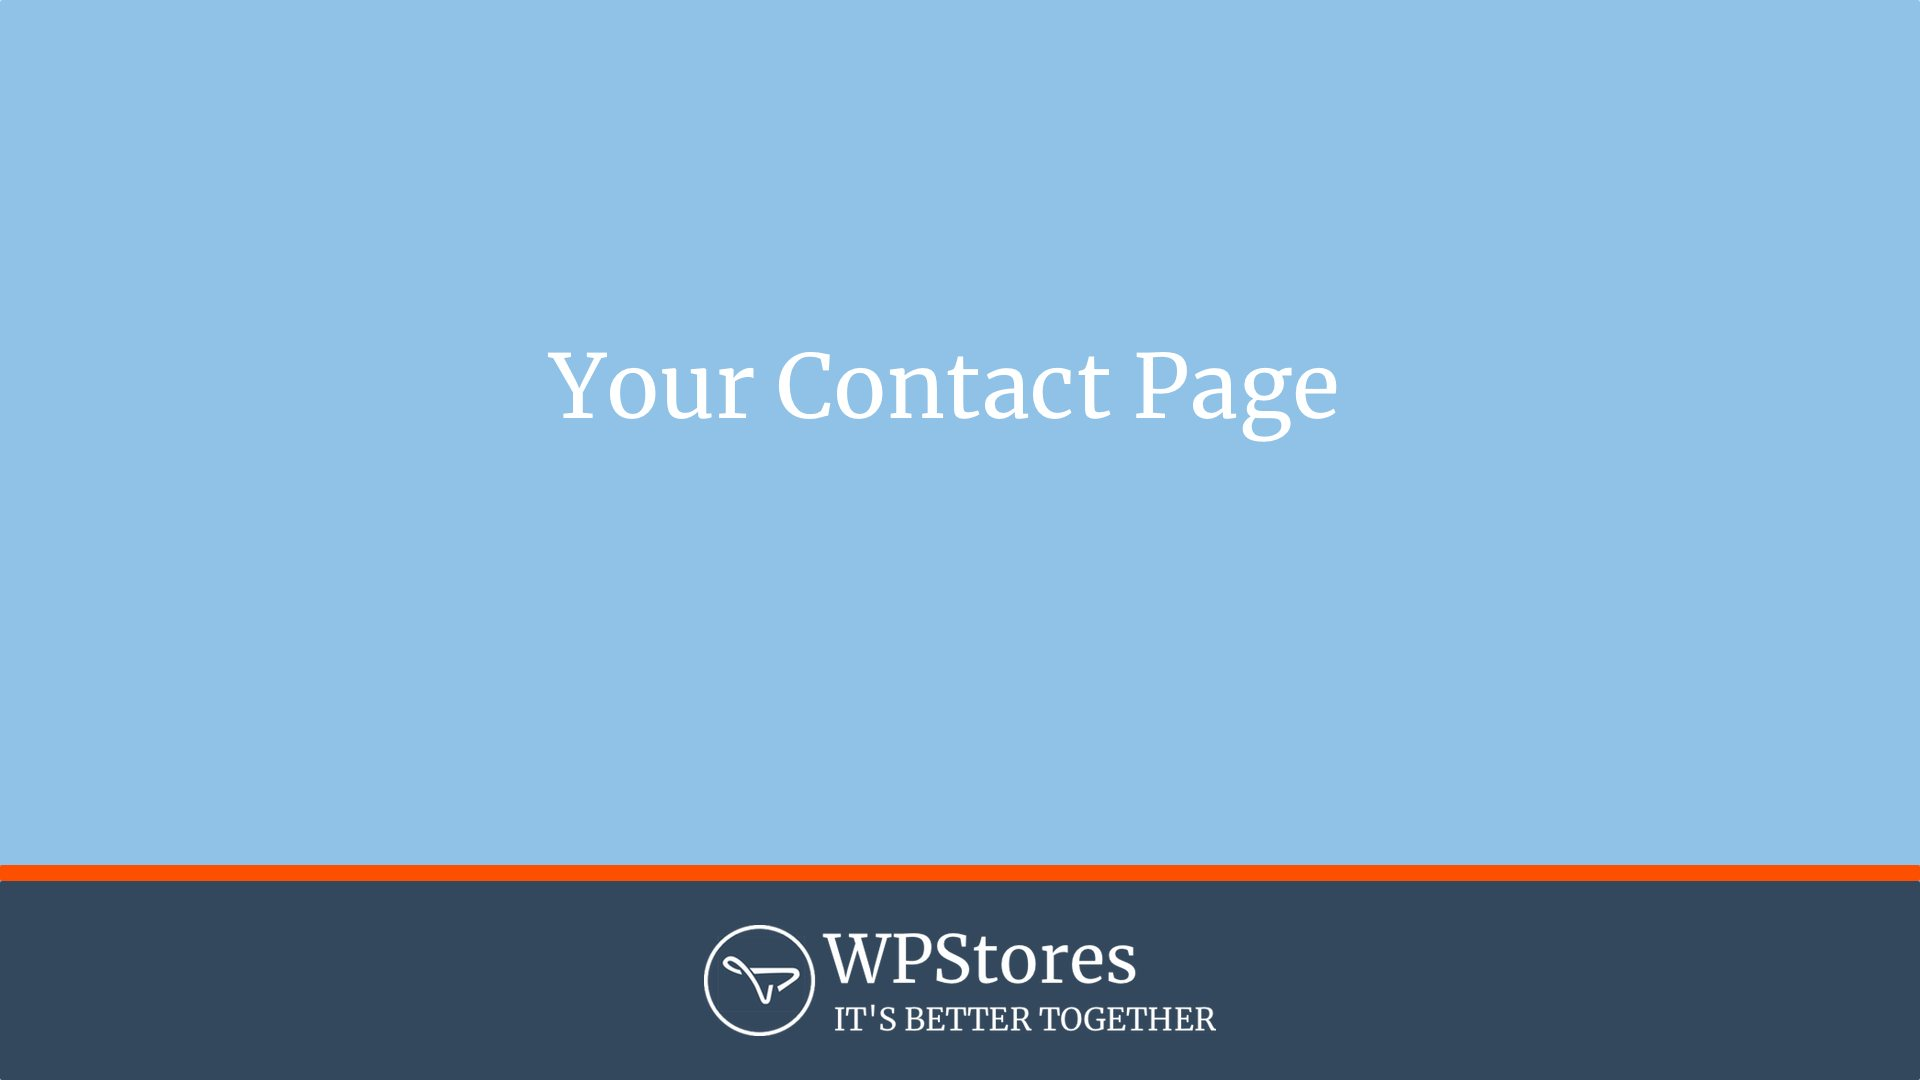 Putting a contact form on your website